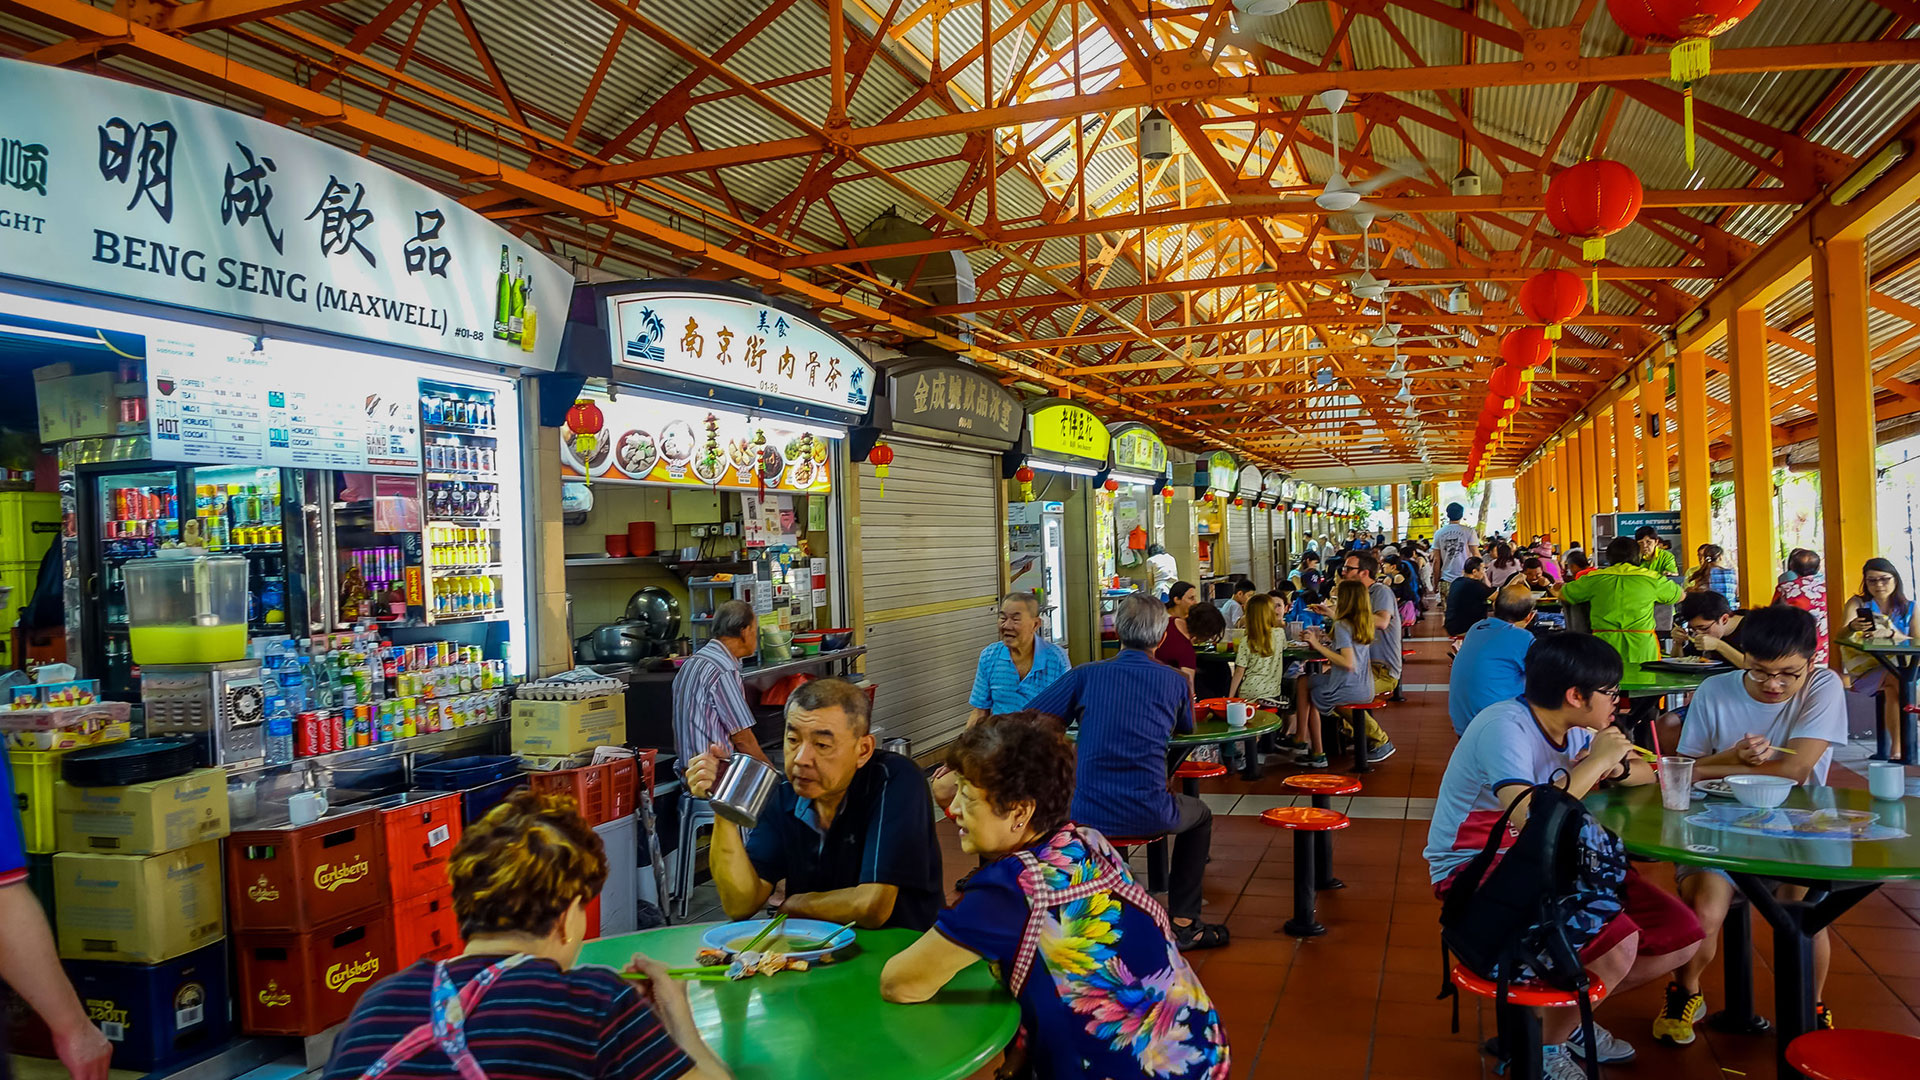 The Amazing Things You Should Know About Some Of Our Famous Hawker Centres